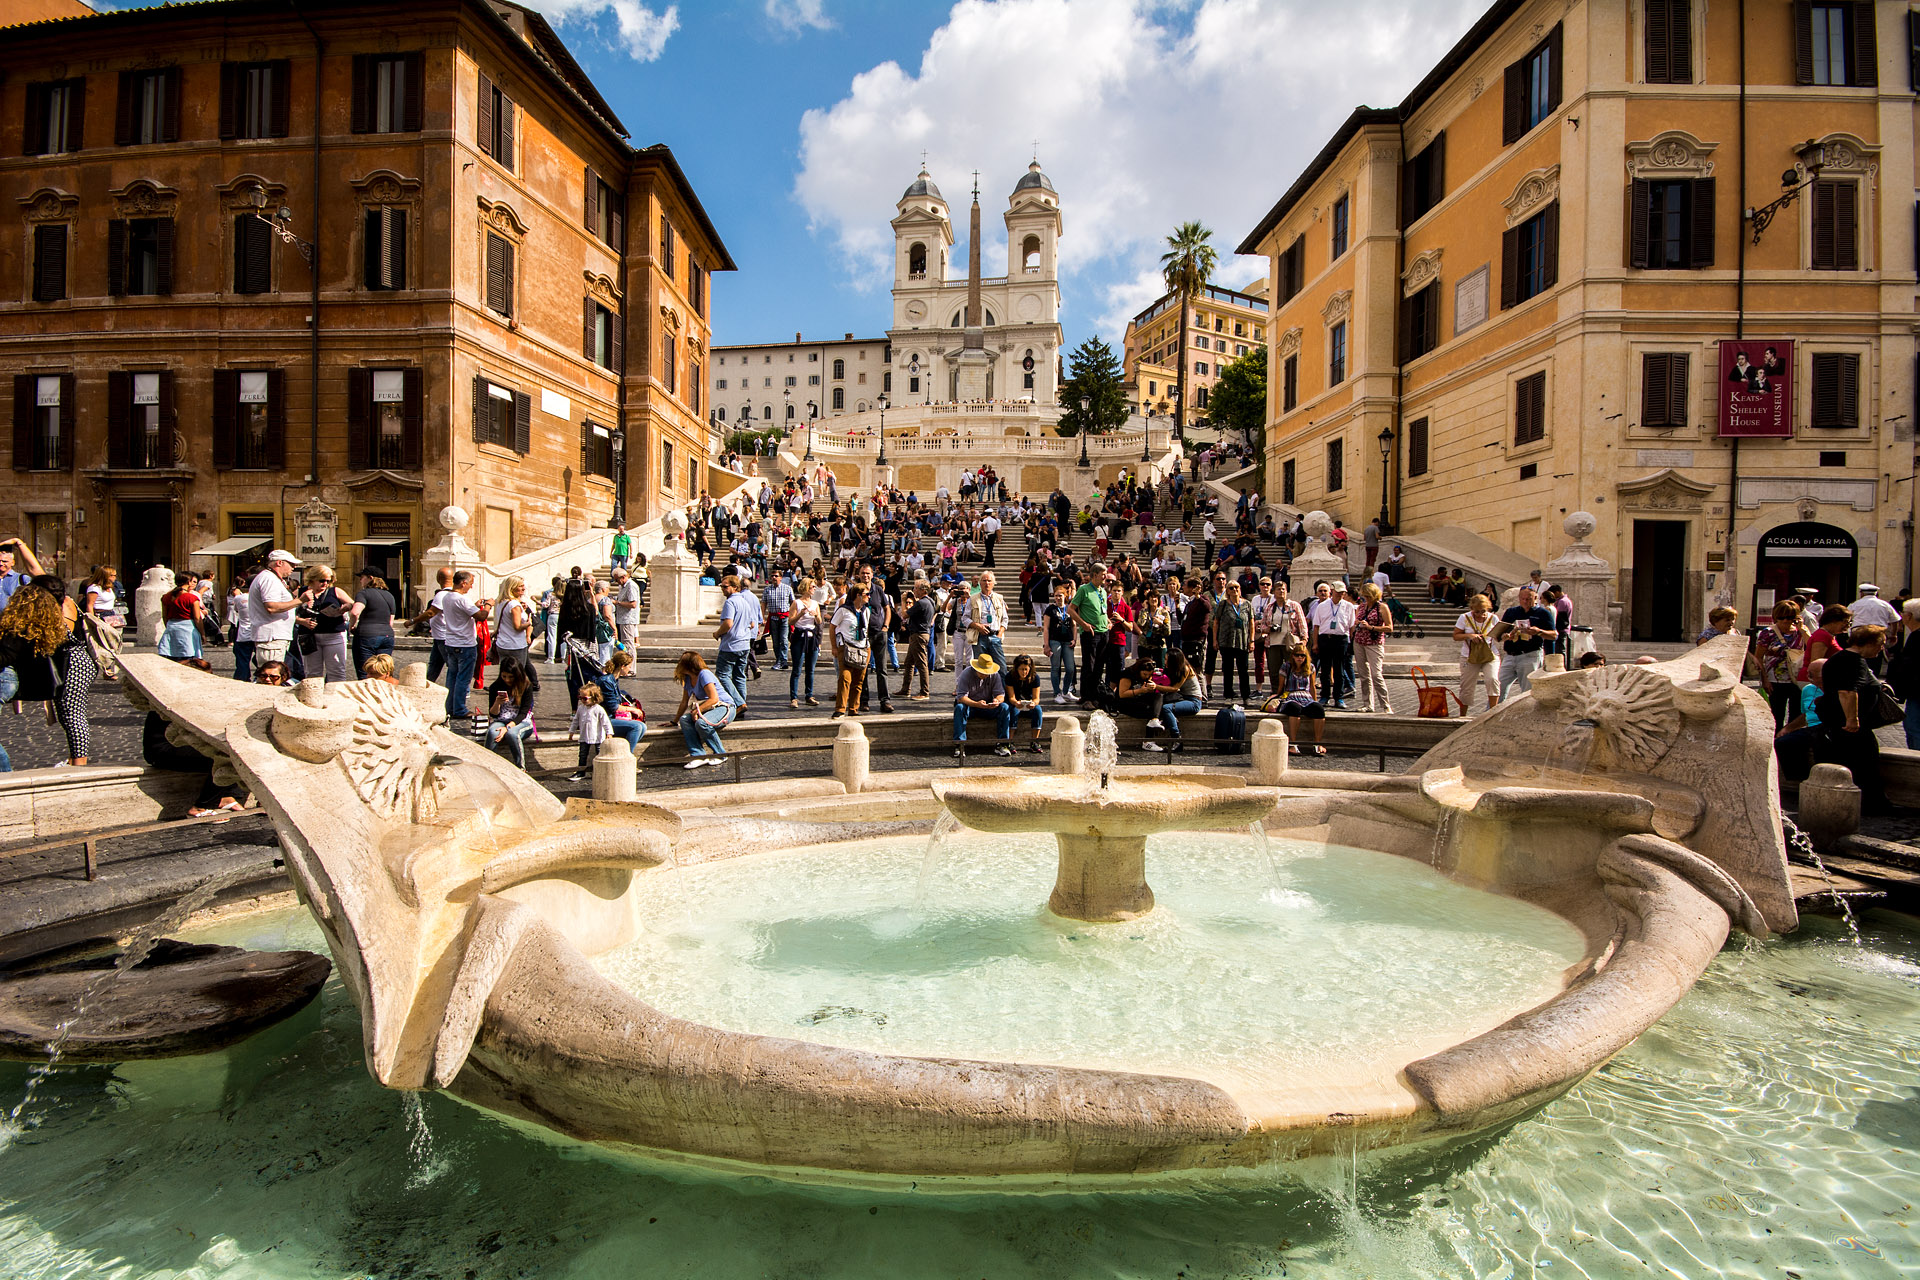 Spanish Steps & Fontana della Barcaccia ('Fountain of the Old Boat')